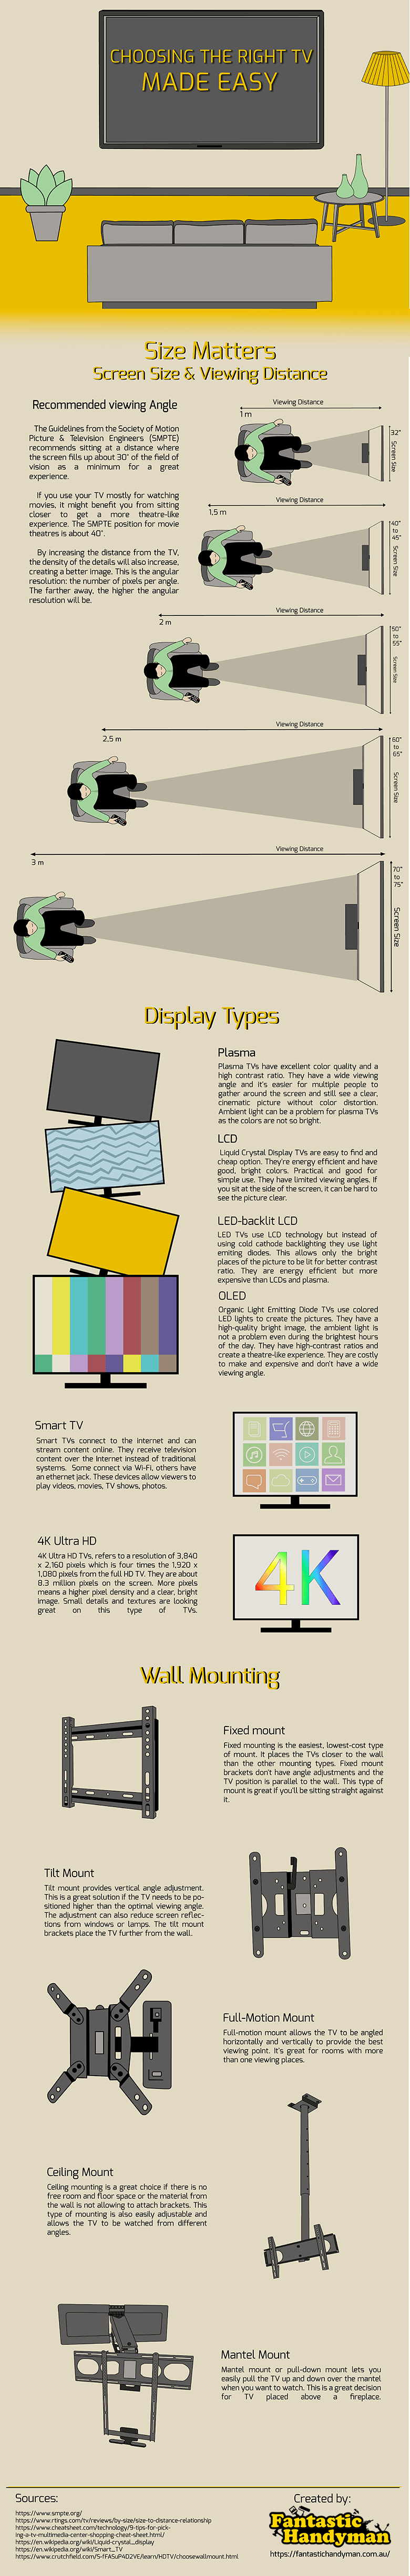 how to choose a TV for you infographic